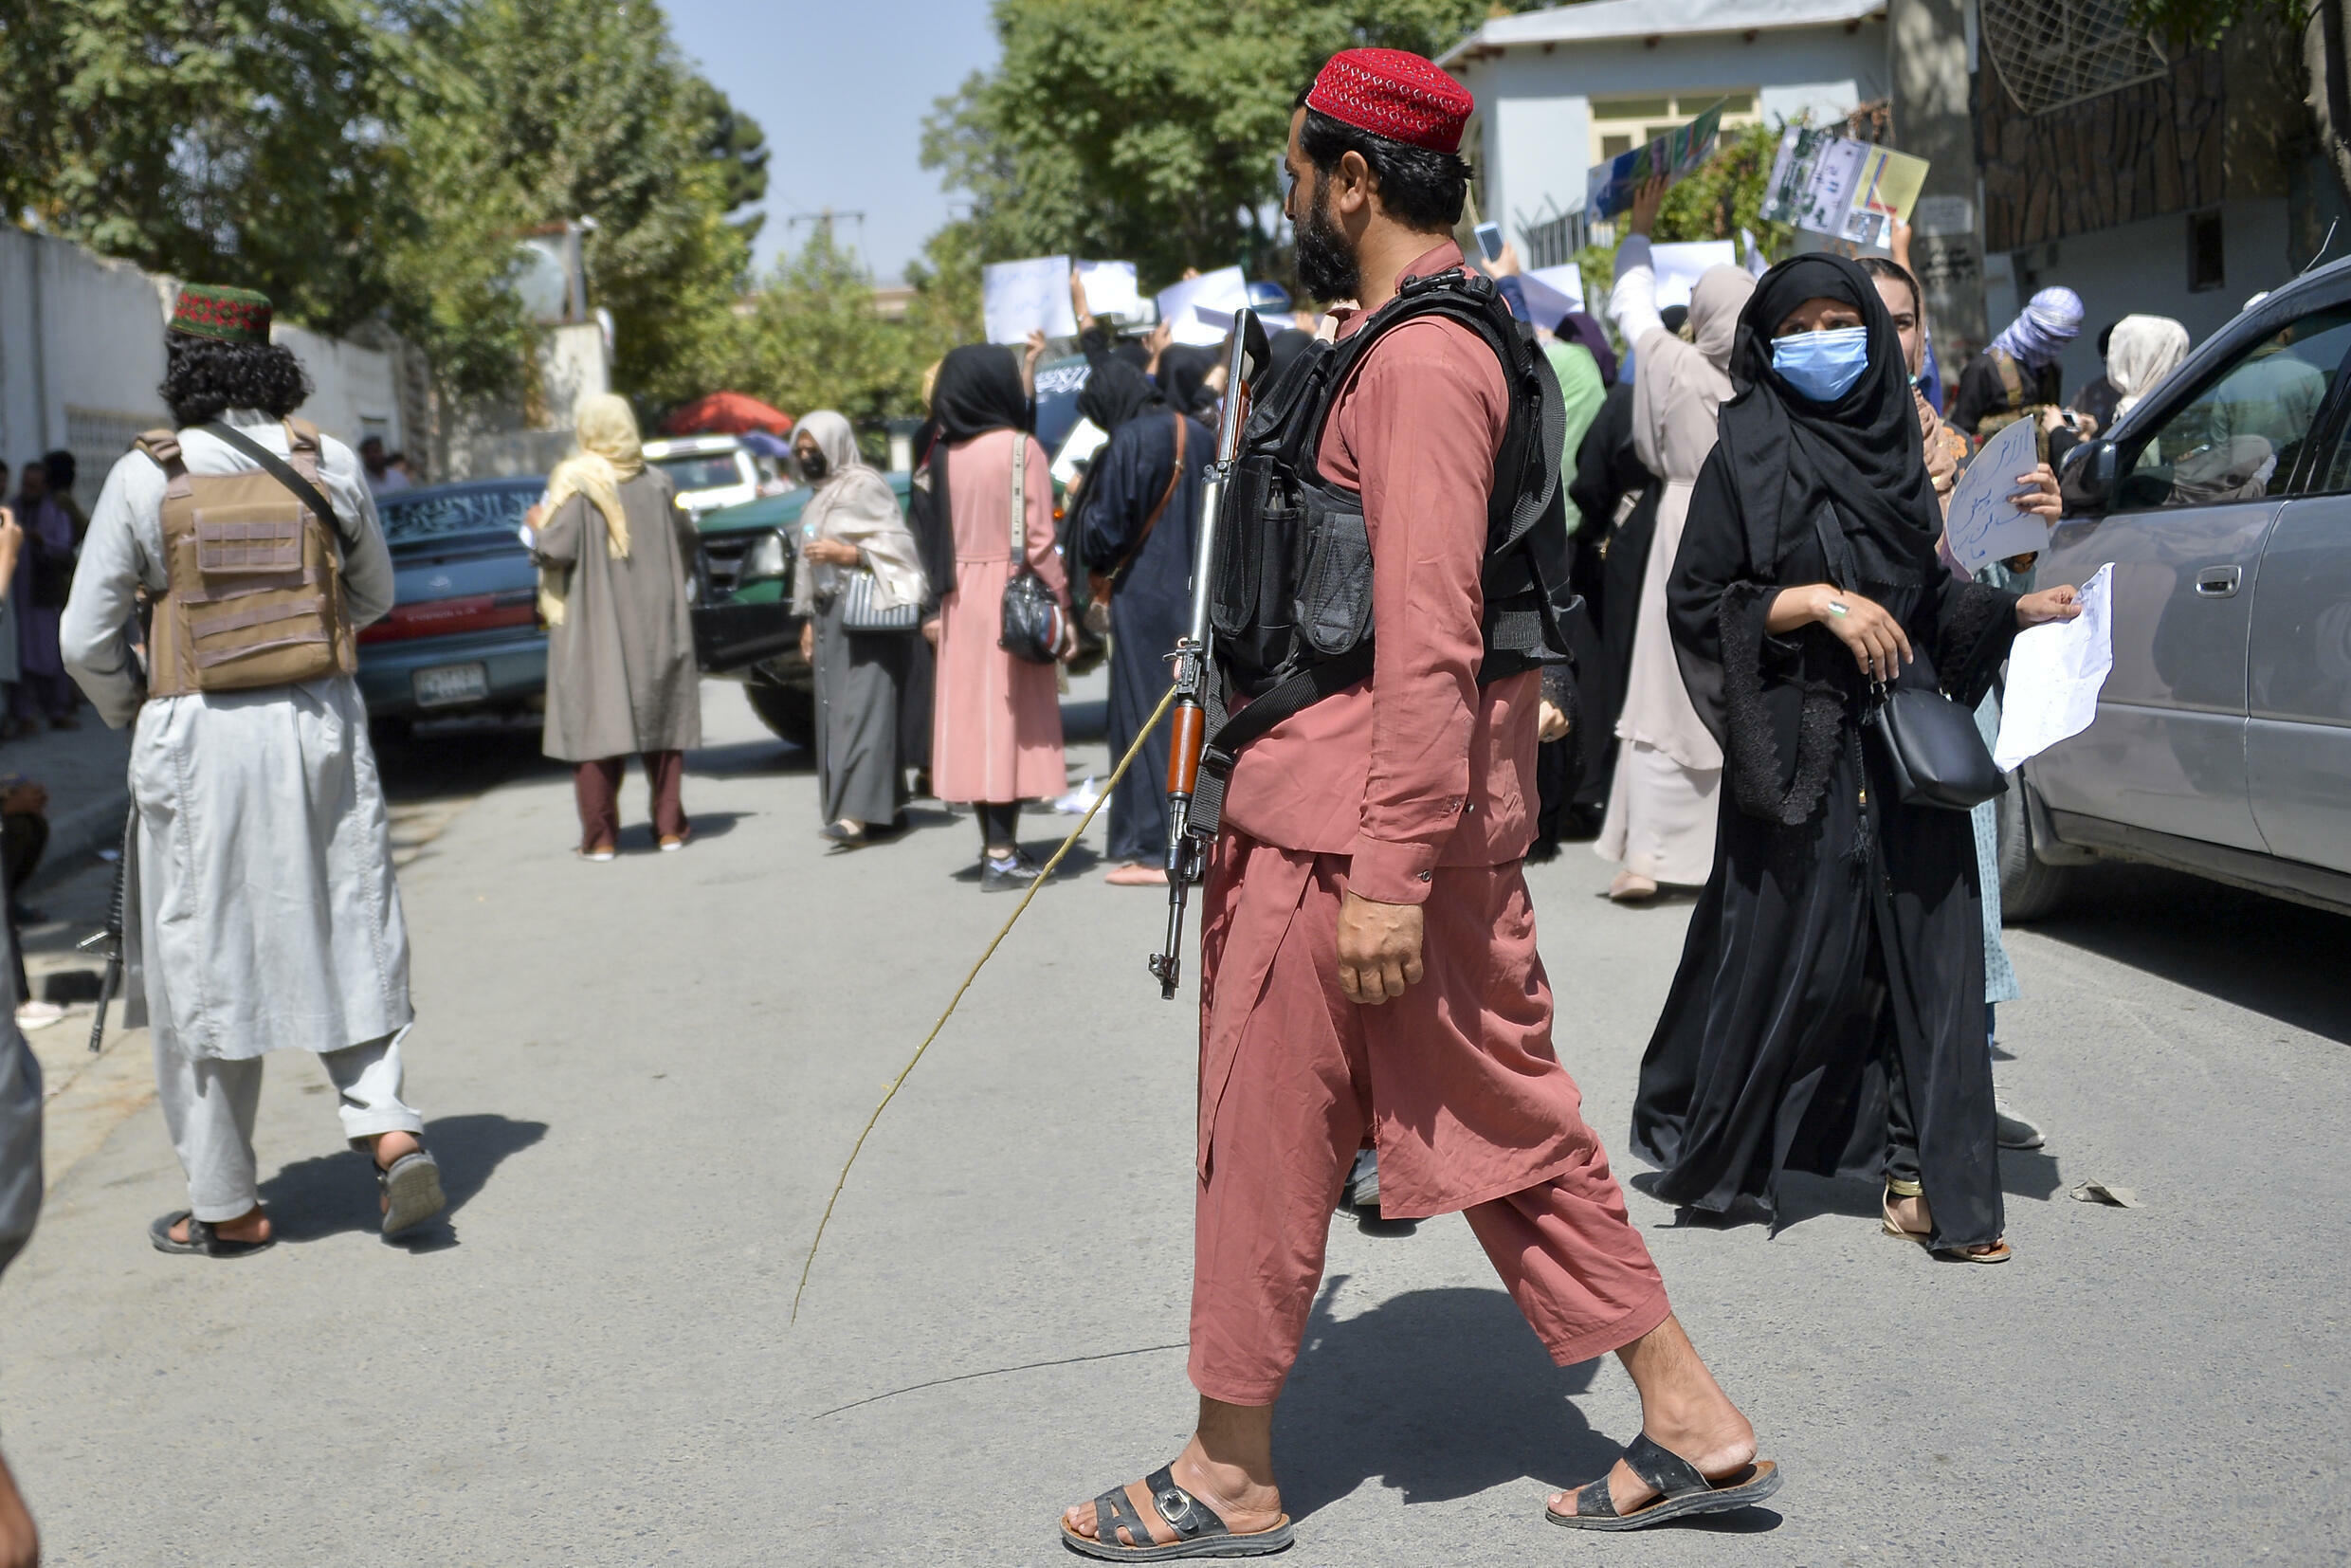 As the Taliban transition from militant force to governing power, they face a growing number of protests against their rule